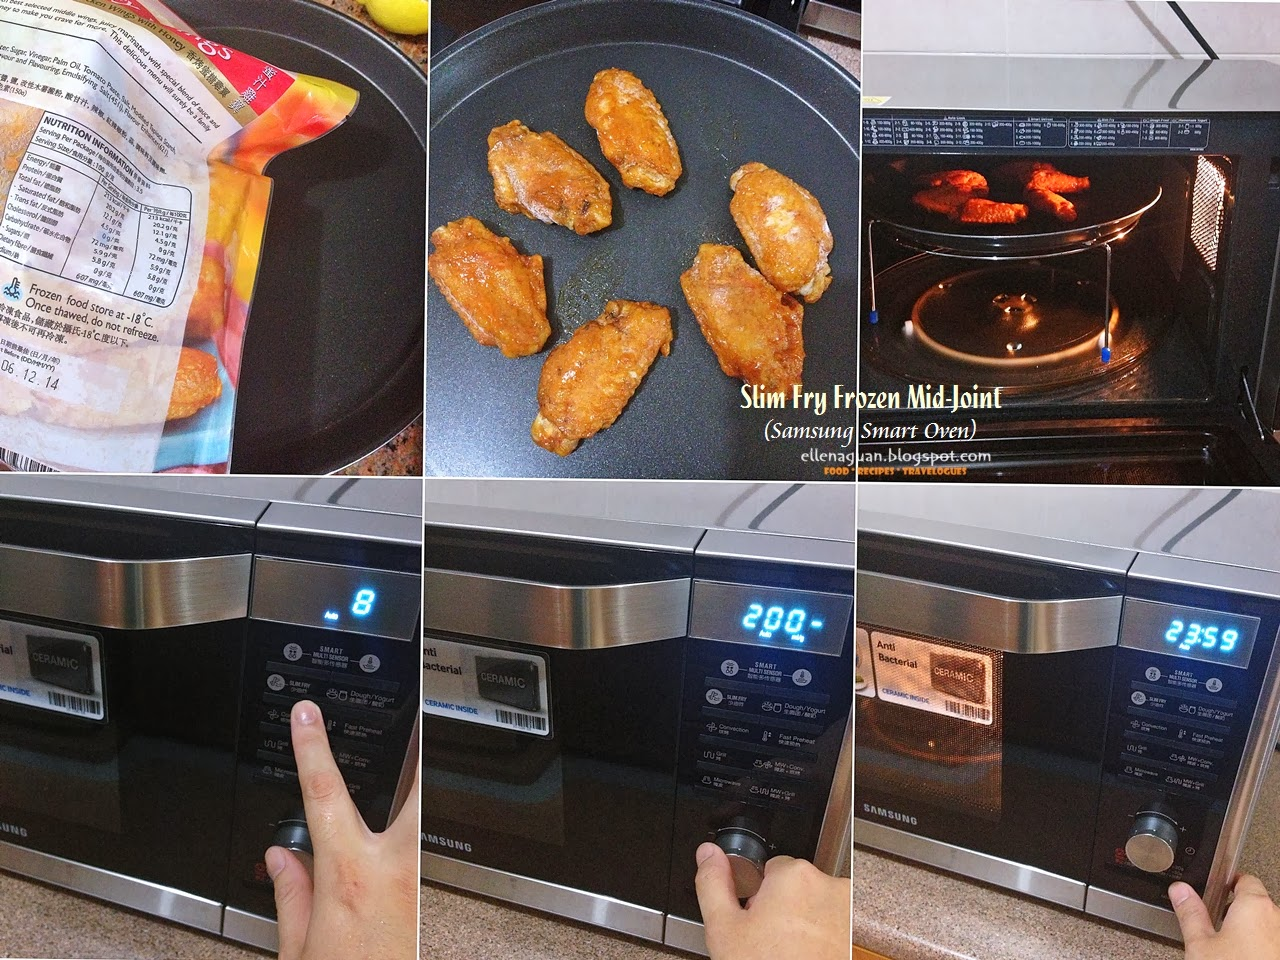 Cuisine Paradise Singapore Food Blog Recipes Reviews And Travel Using Samsung Smart Oven Mc32f606 Part I